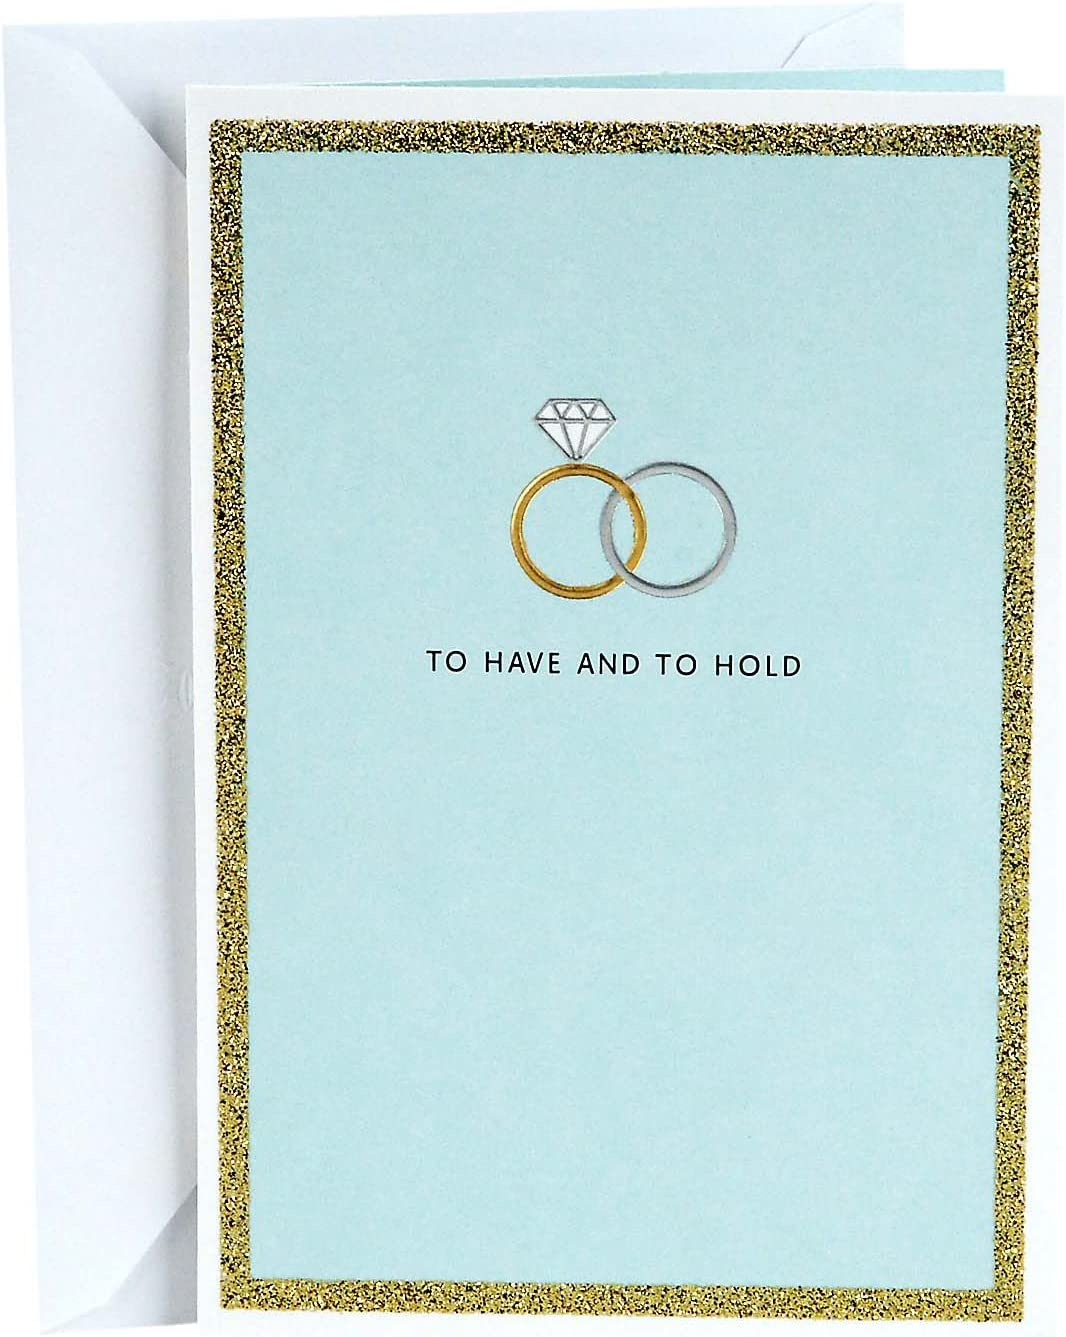 Hallmark Wedding Card To Beauty products Have and Latest item - Hold Bands 399R